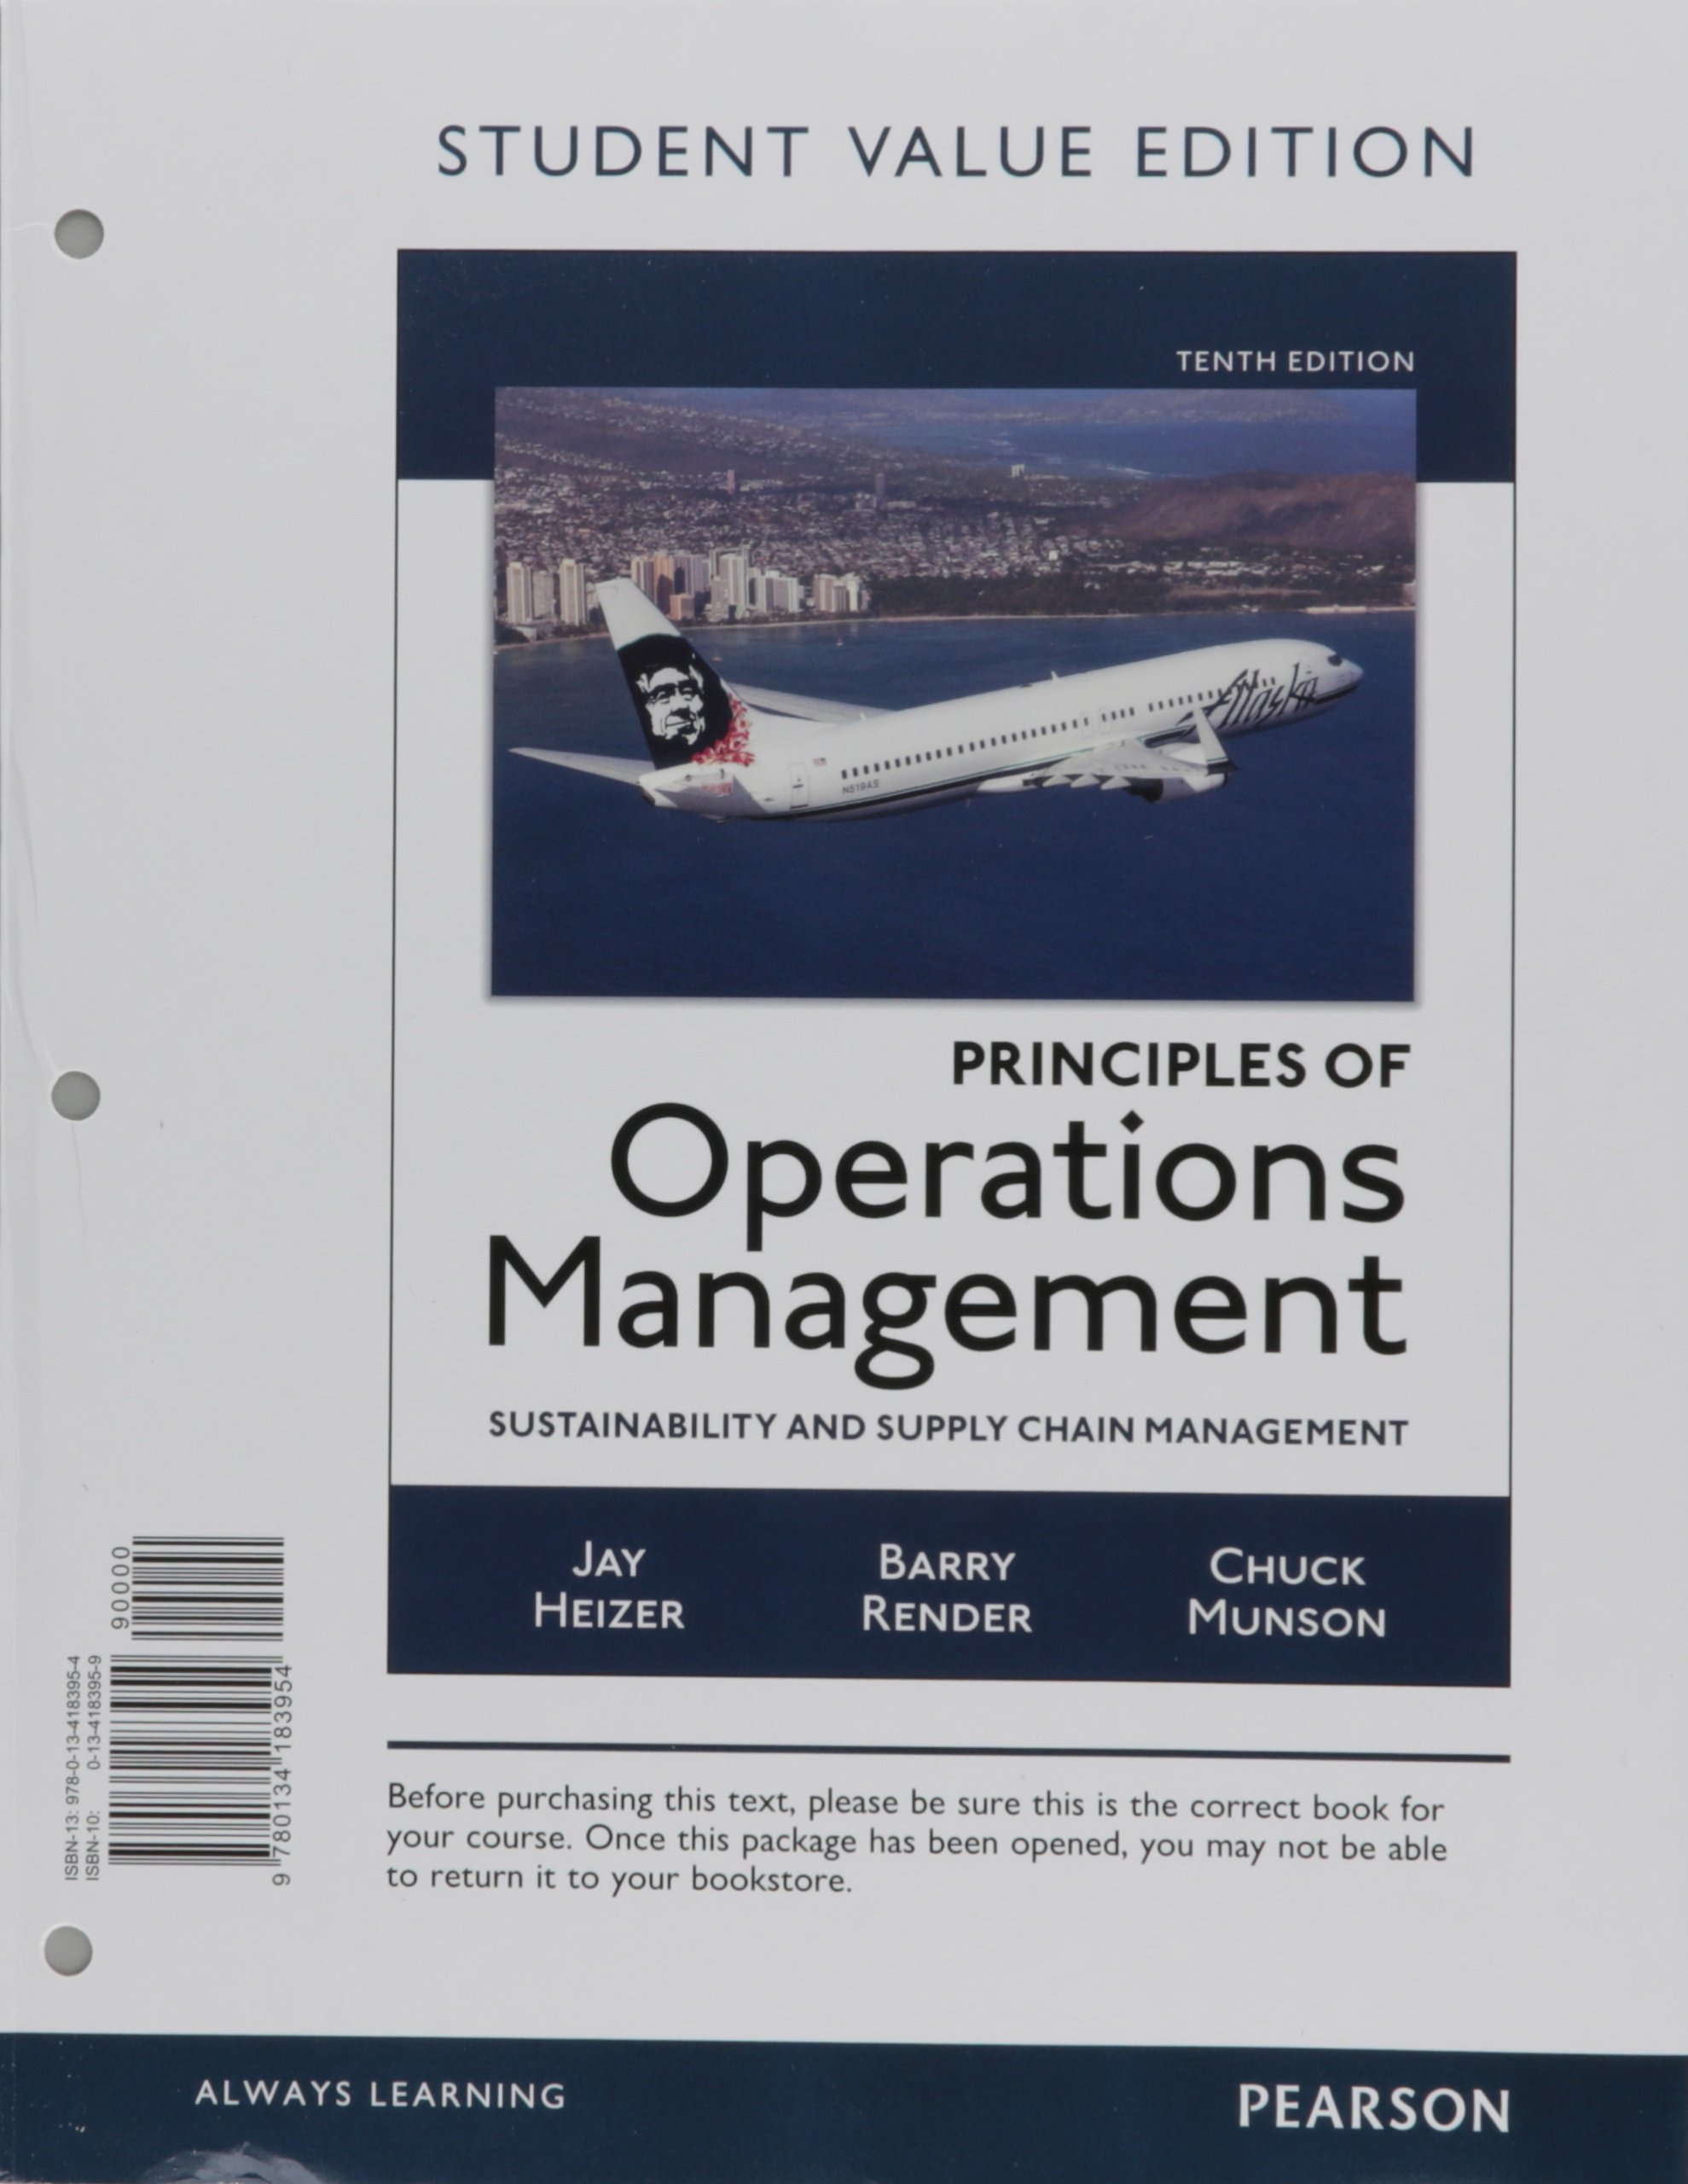 Principles of Operations Management: Sustainability and